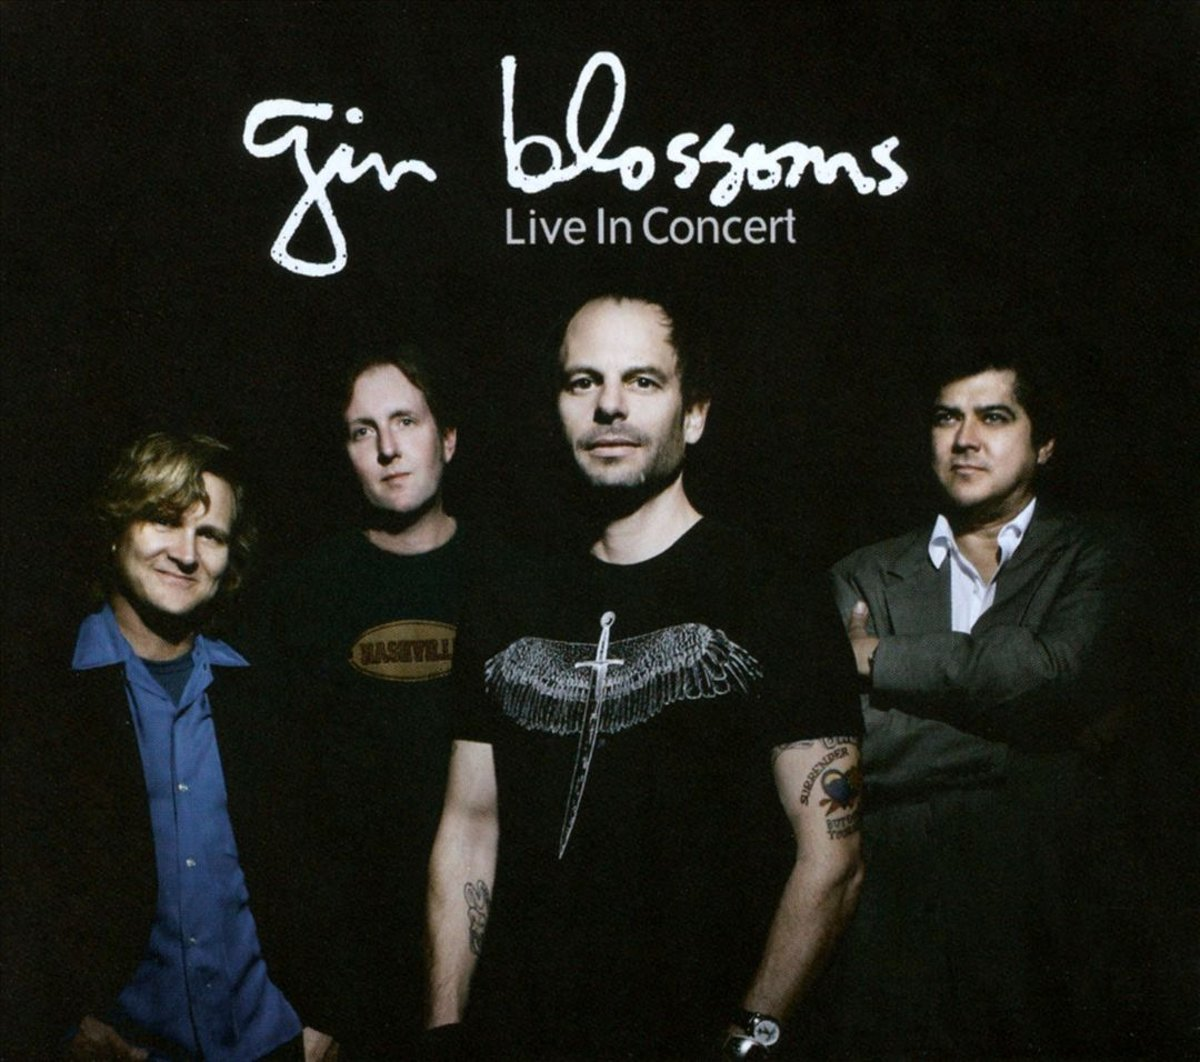 Gin Blossoms Gin Blossoms. Live In Concert camel total pressure live in concert 1984